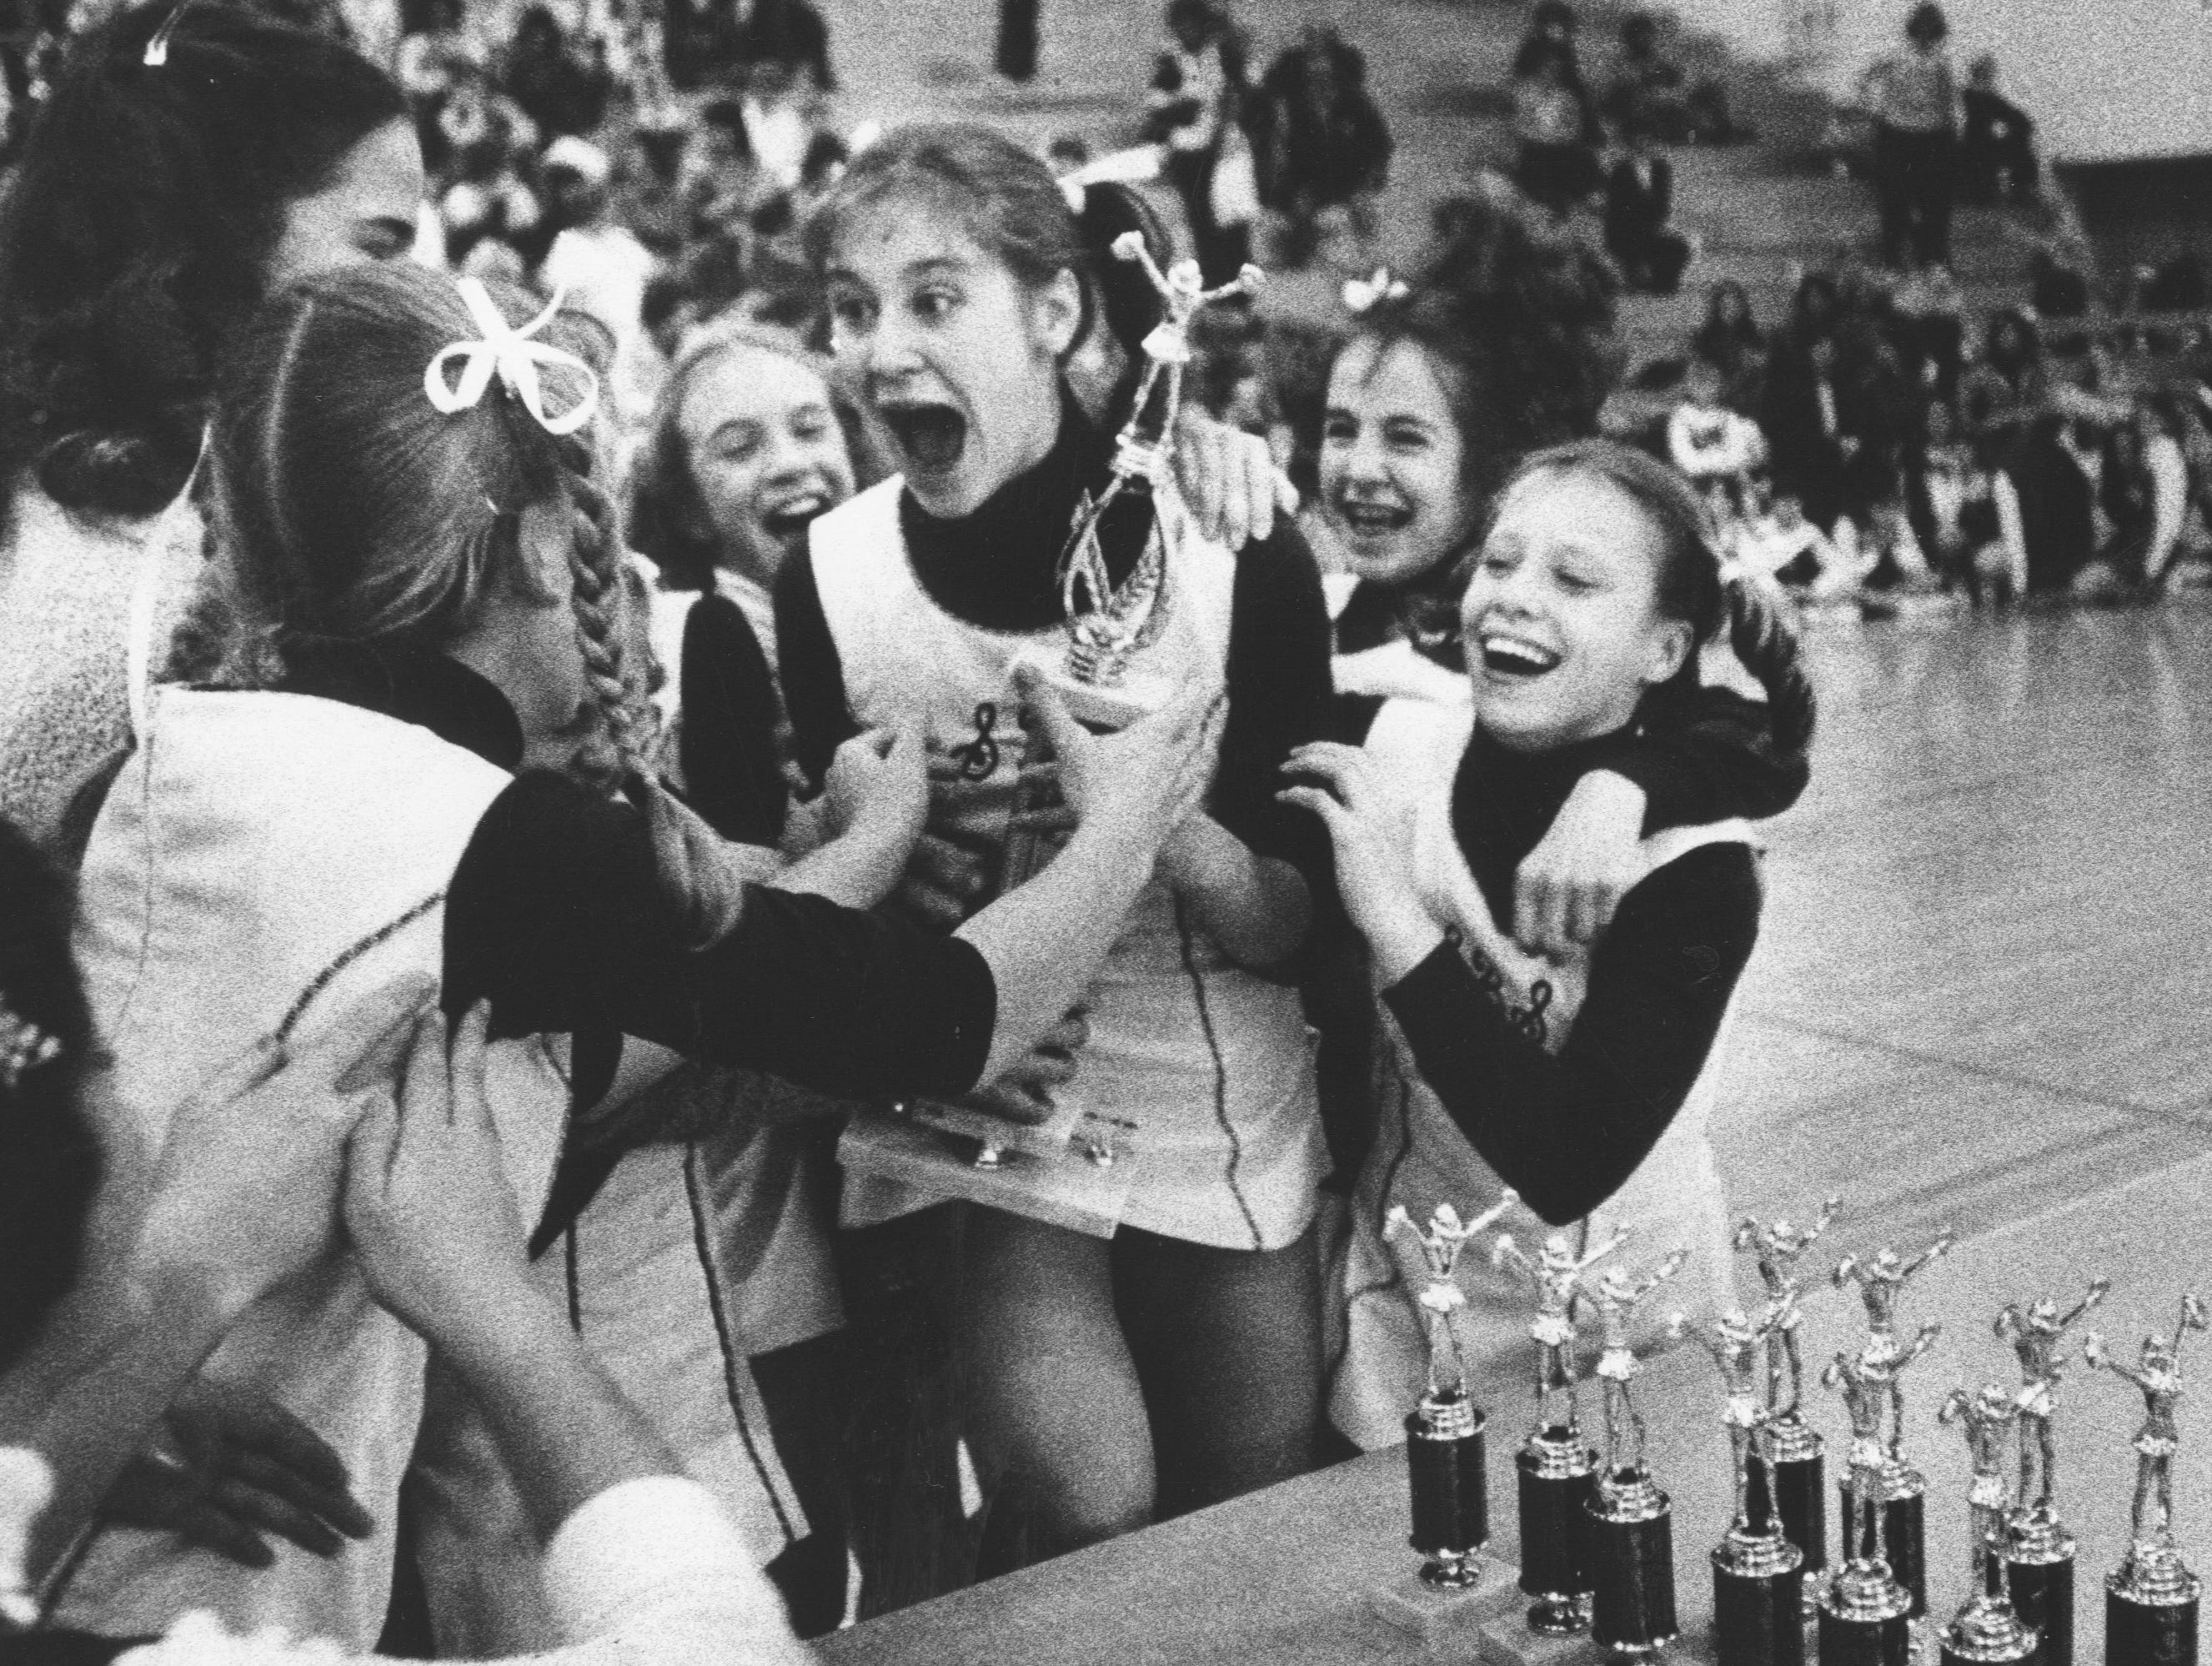 St. Barnabas cheerleaders celebrate after winning 1st place in the 7th/8th grade cheer competition. 1997